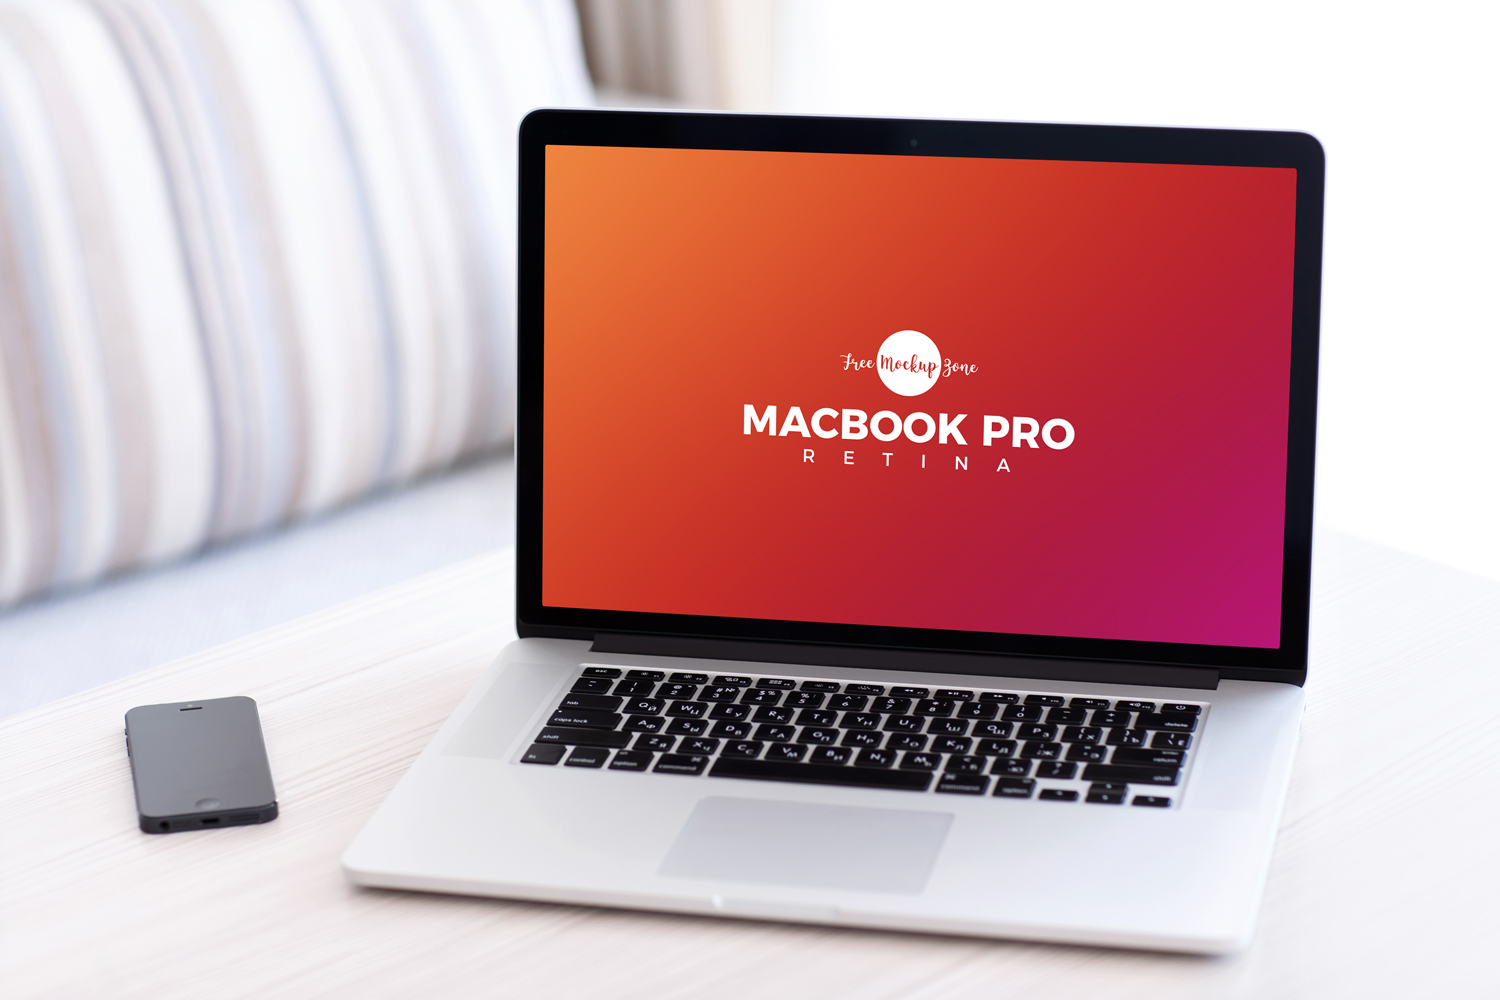 Home Design App For Laptop Free Psd Macbook Pro Retina Mockup 2018